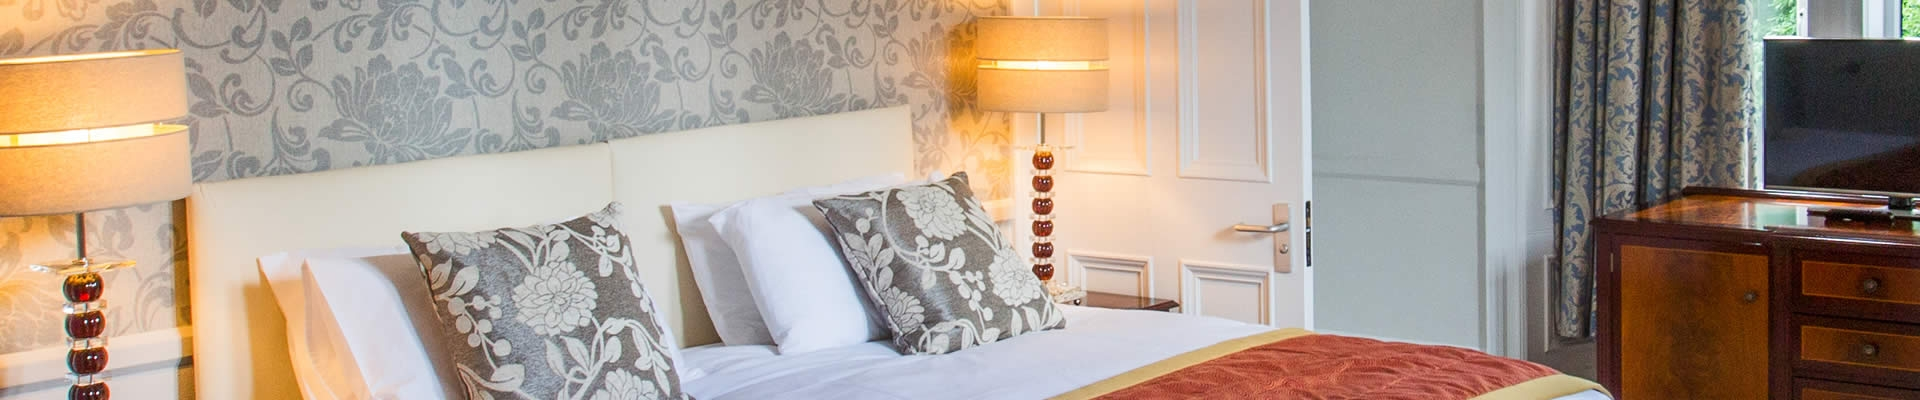 hotel accommodation scottish borders